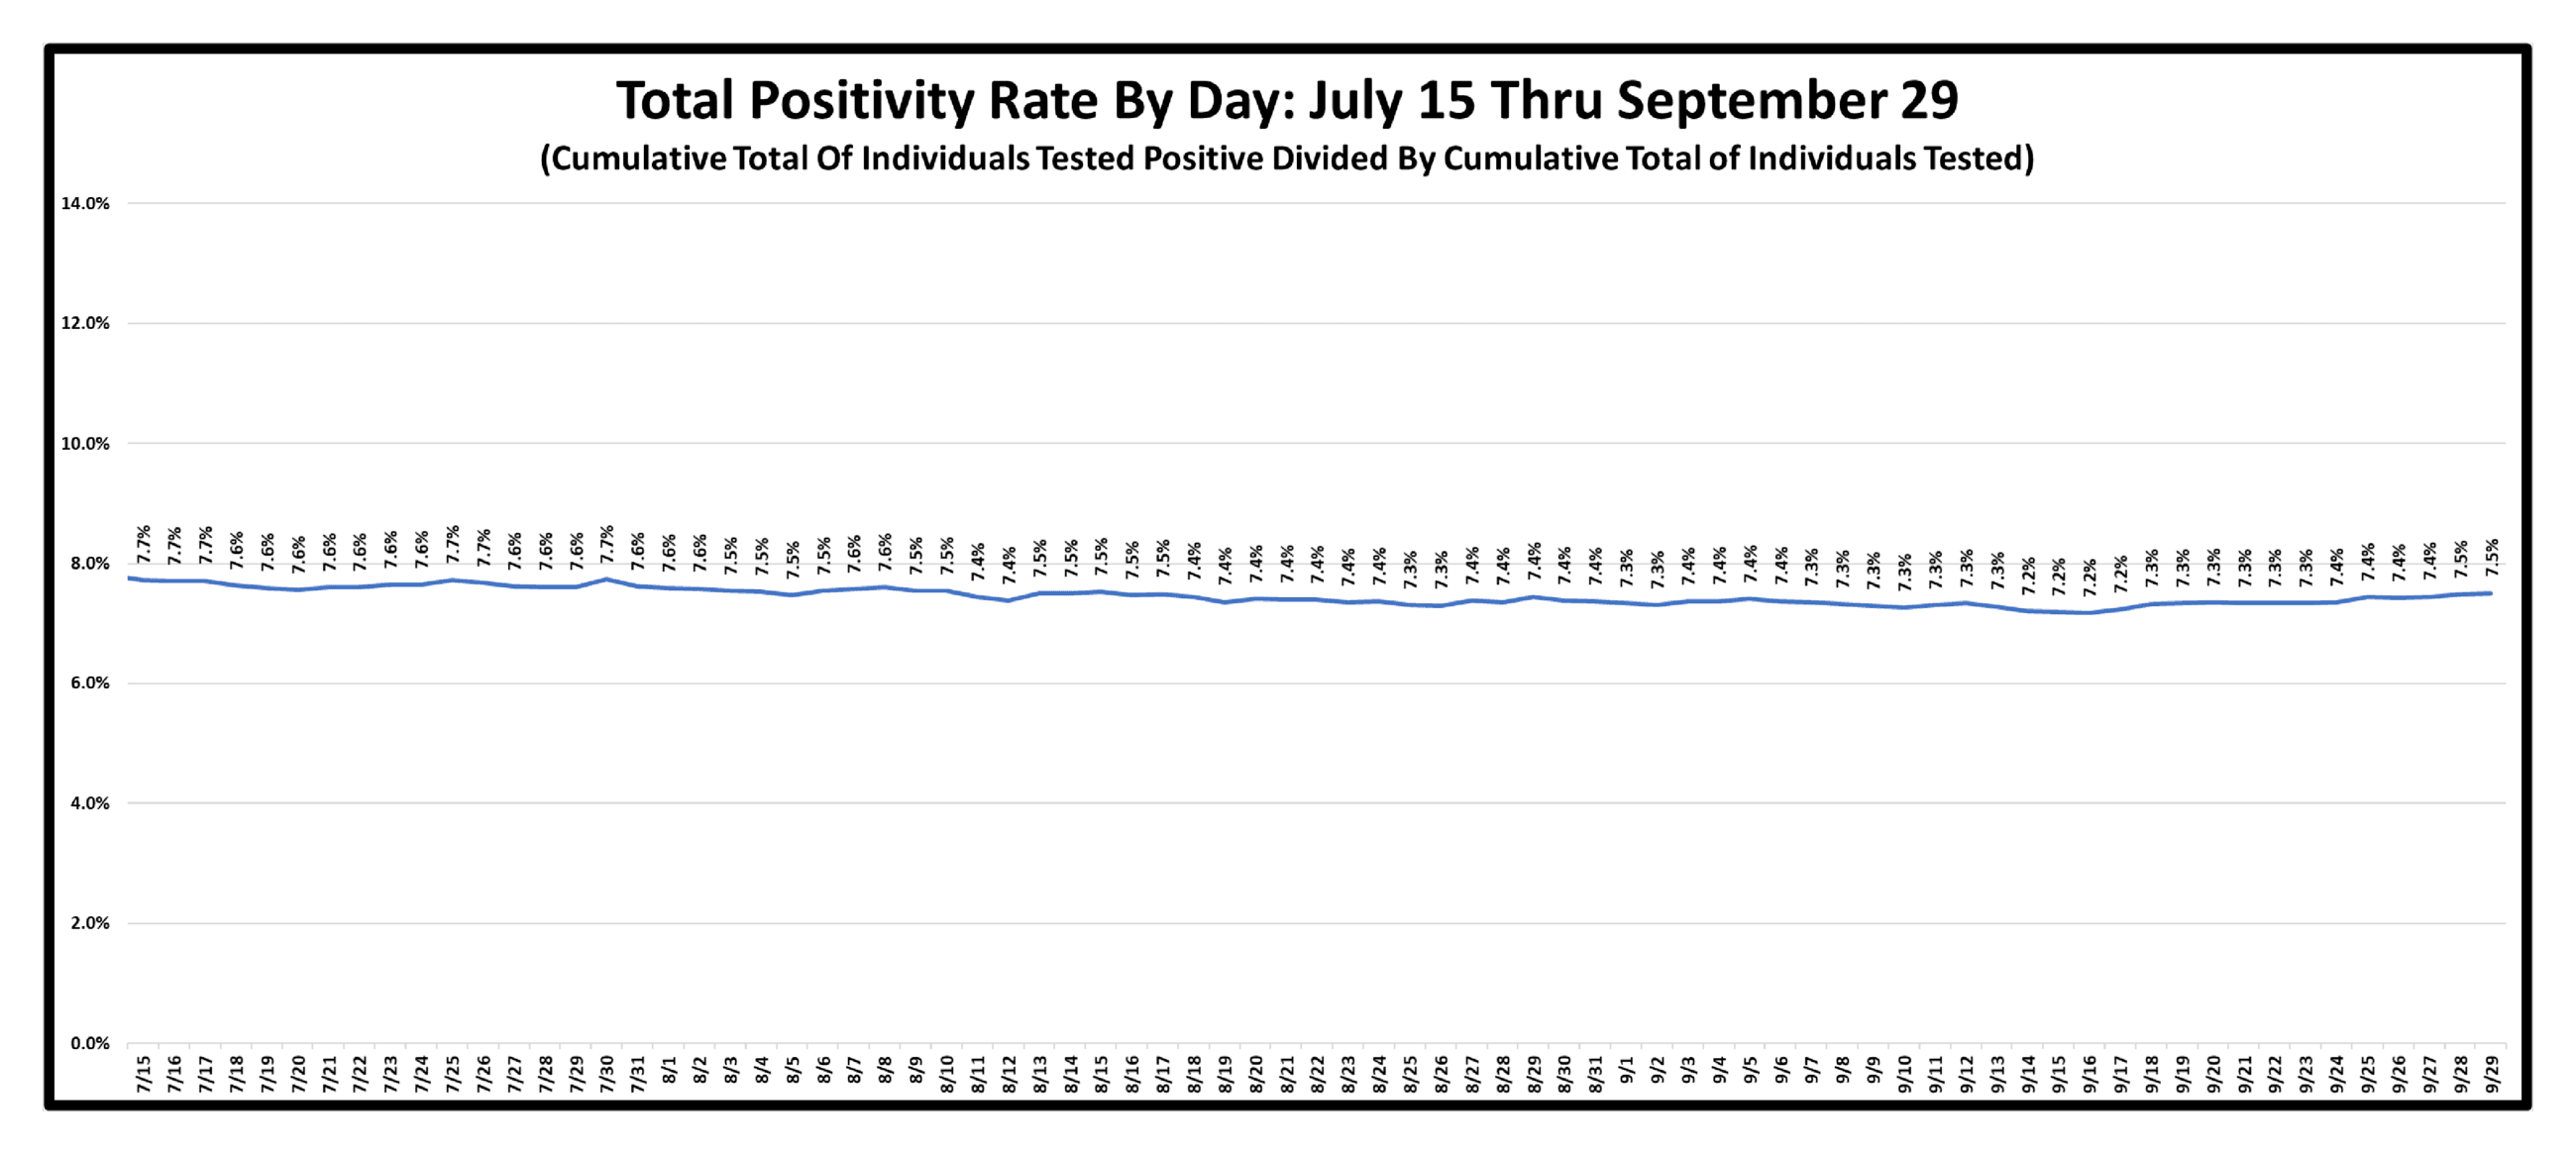 Total Positivity Rate By Day As Of September 29